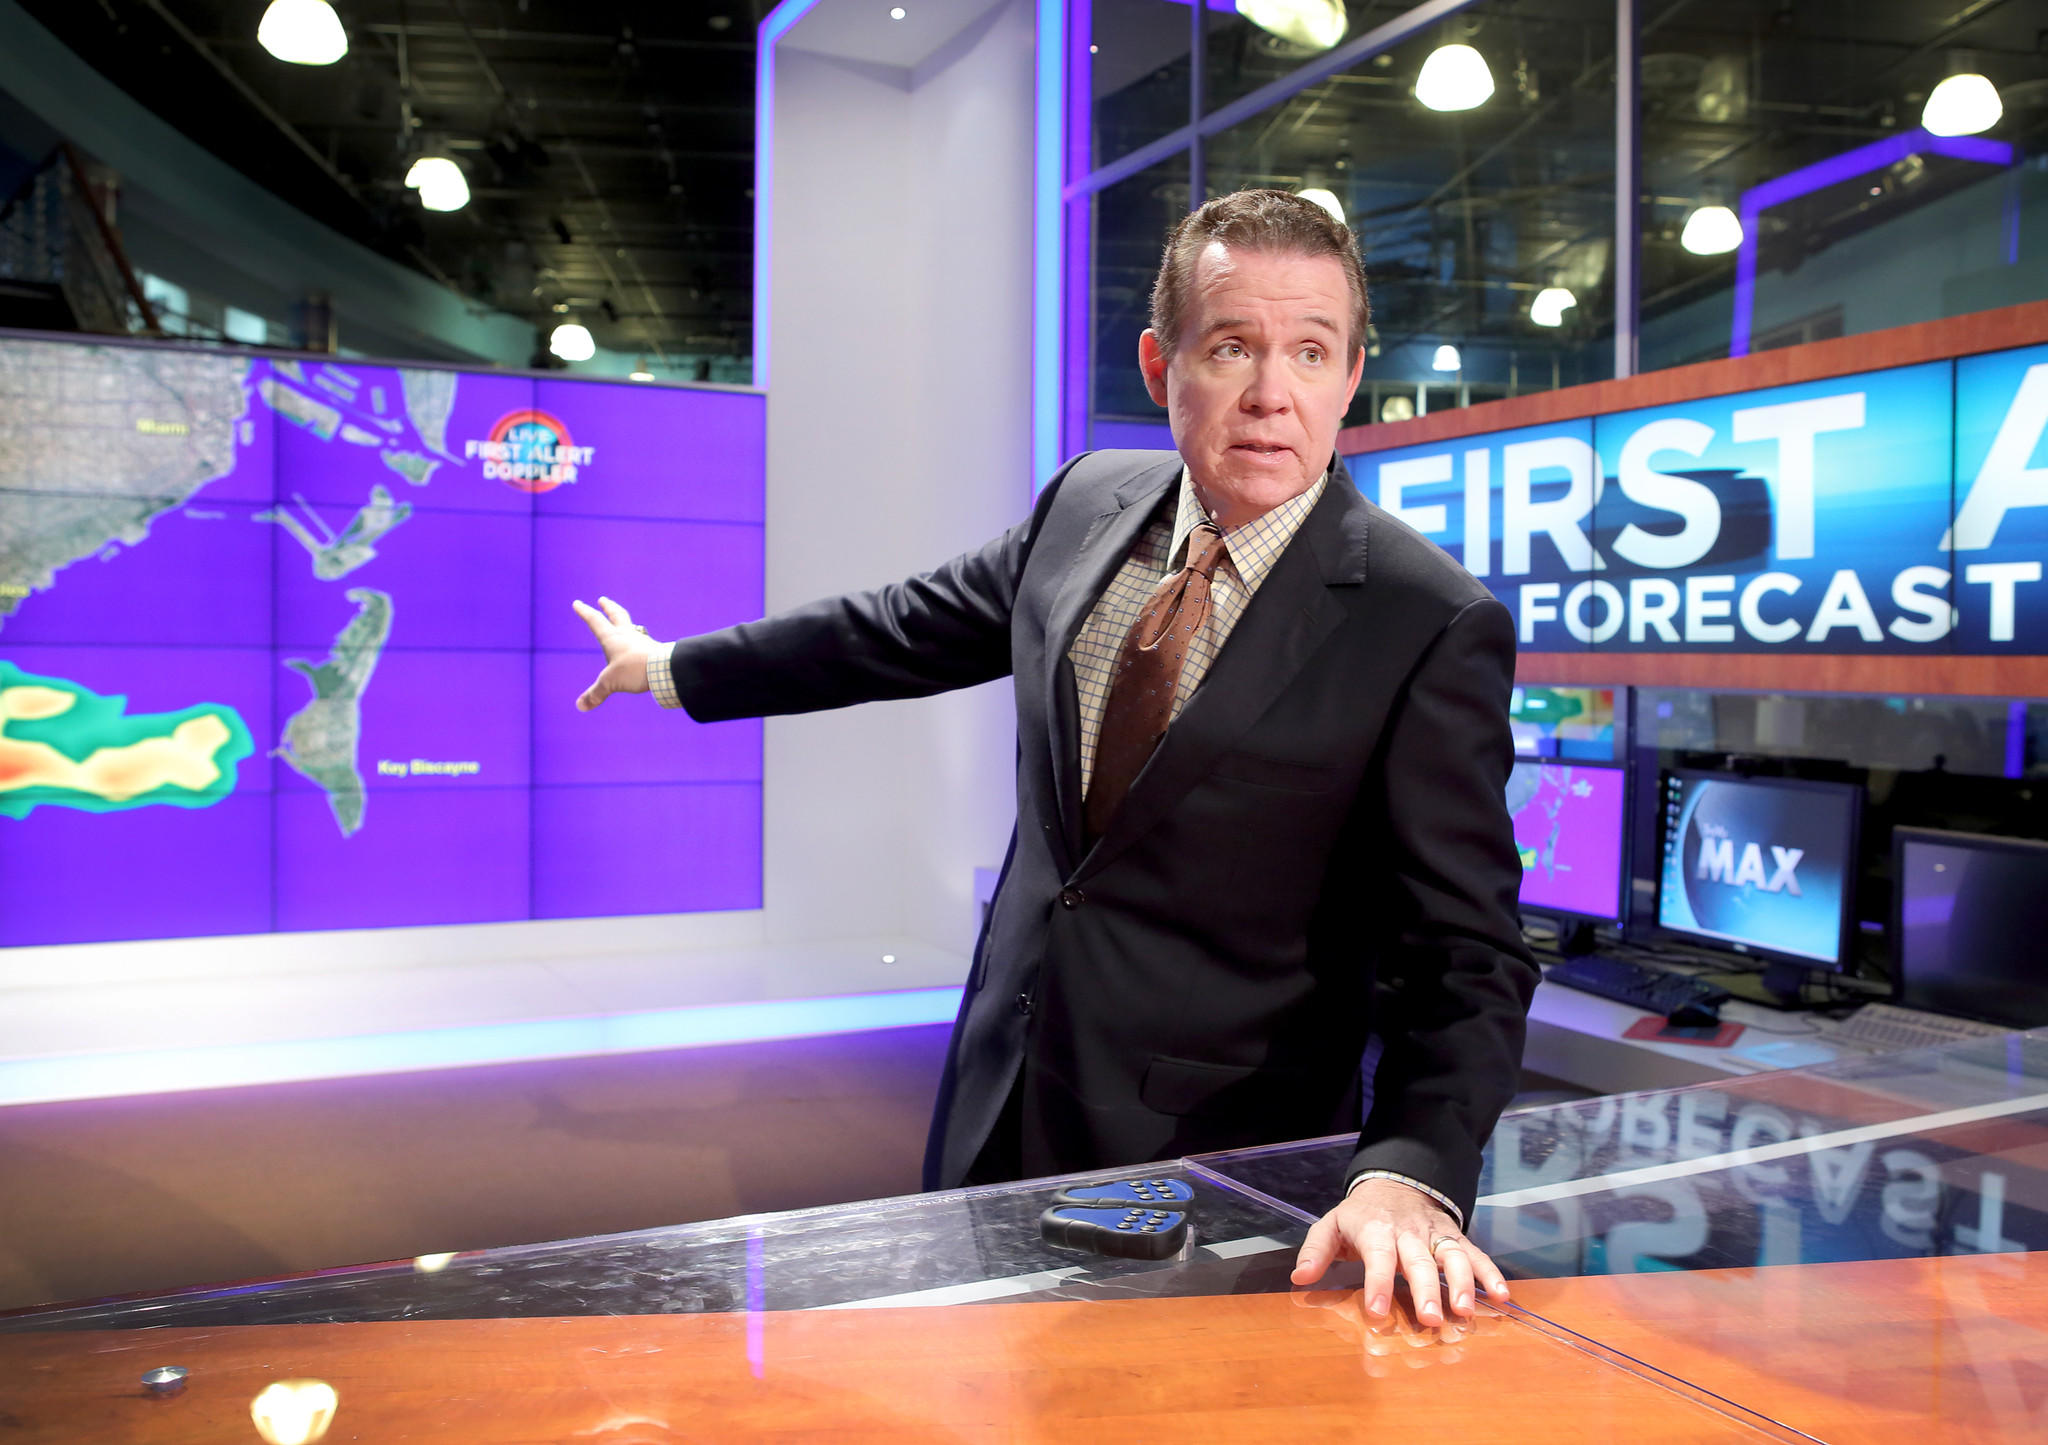 John Morales, NBC 6 channel's meteorologist, works at the Studio on May 26, 2014.